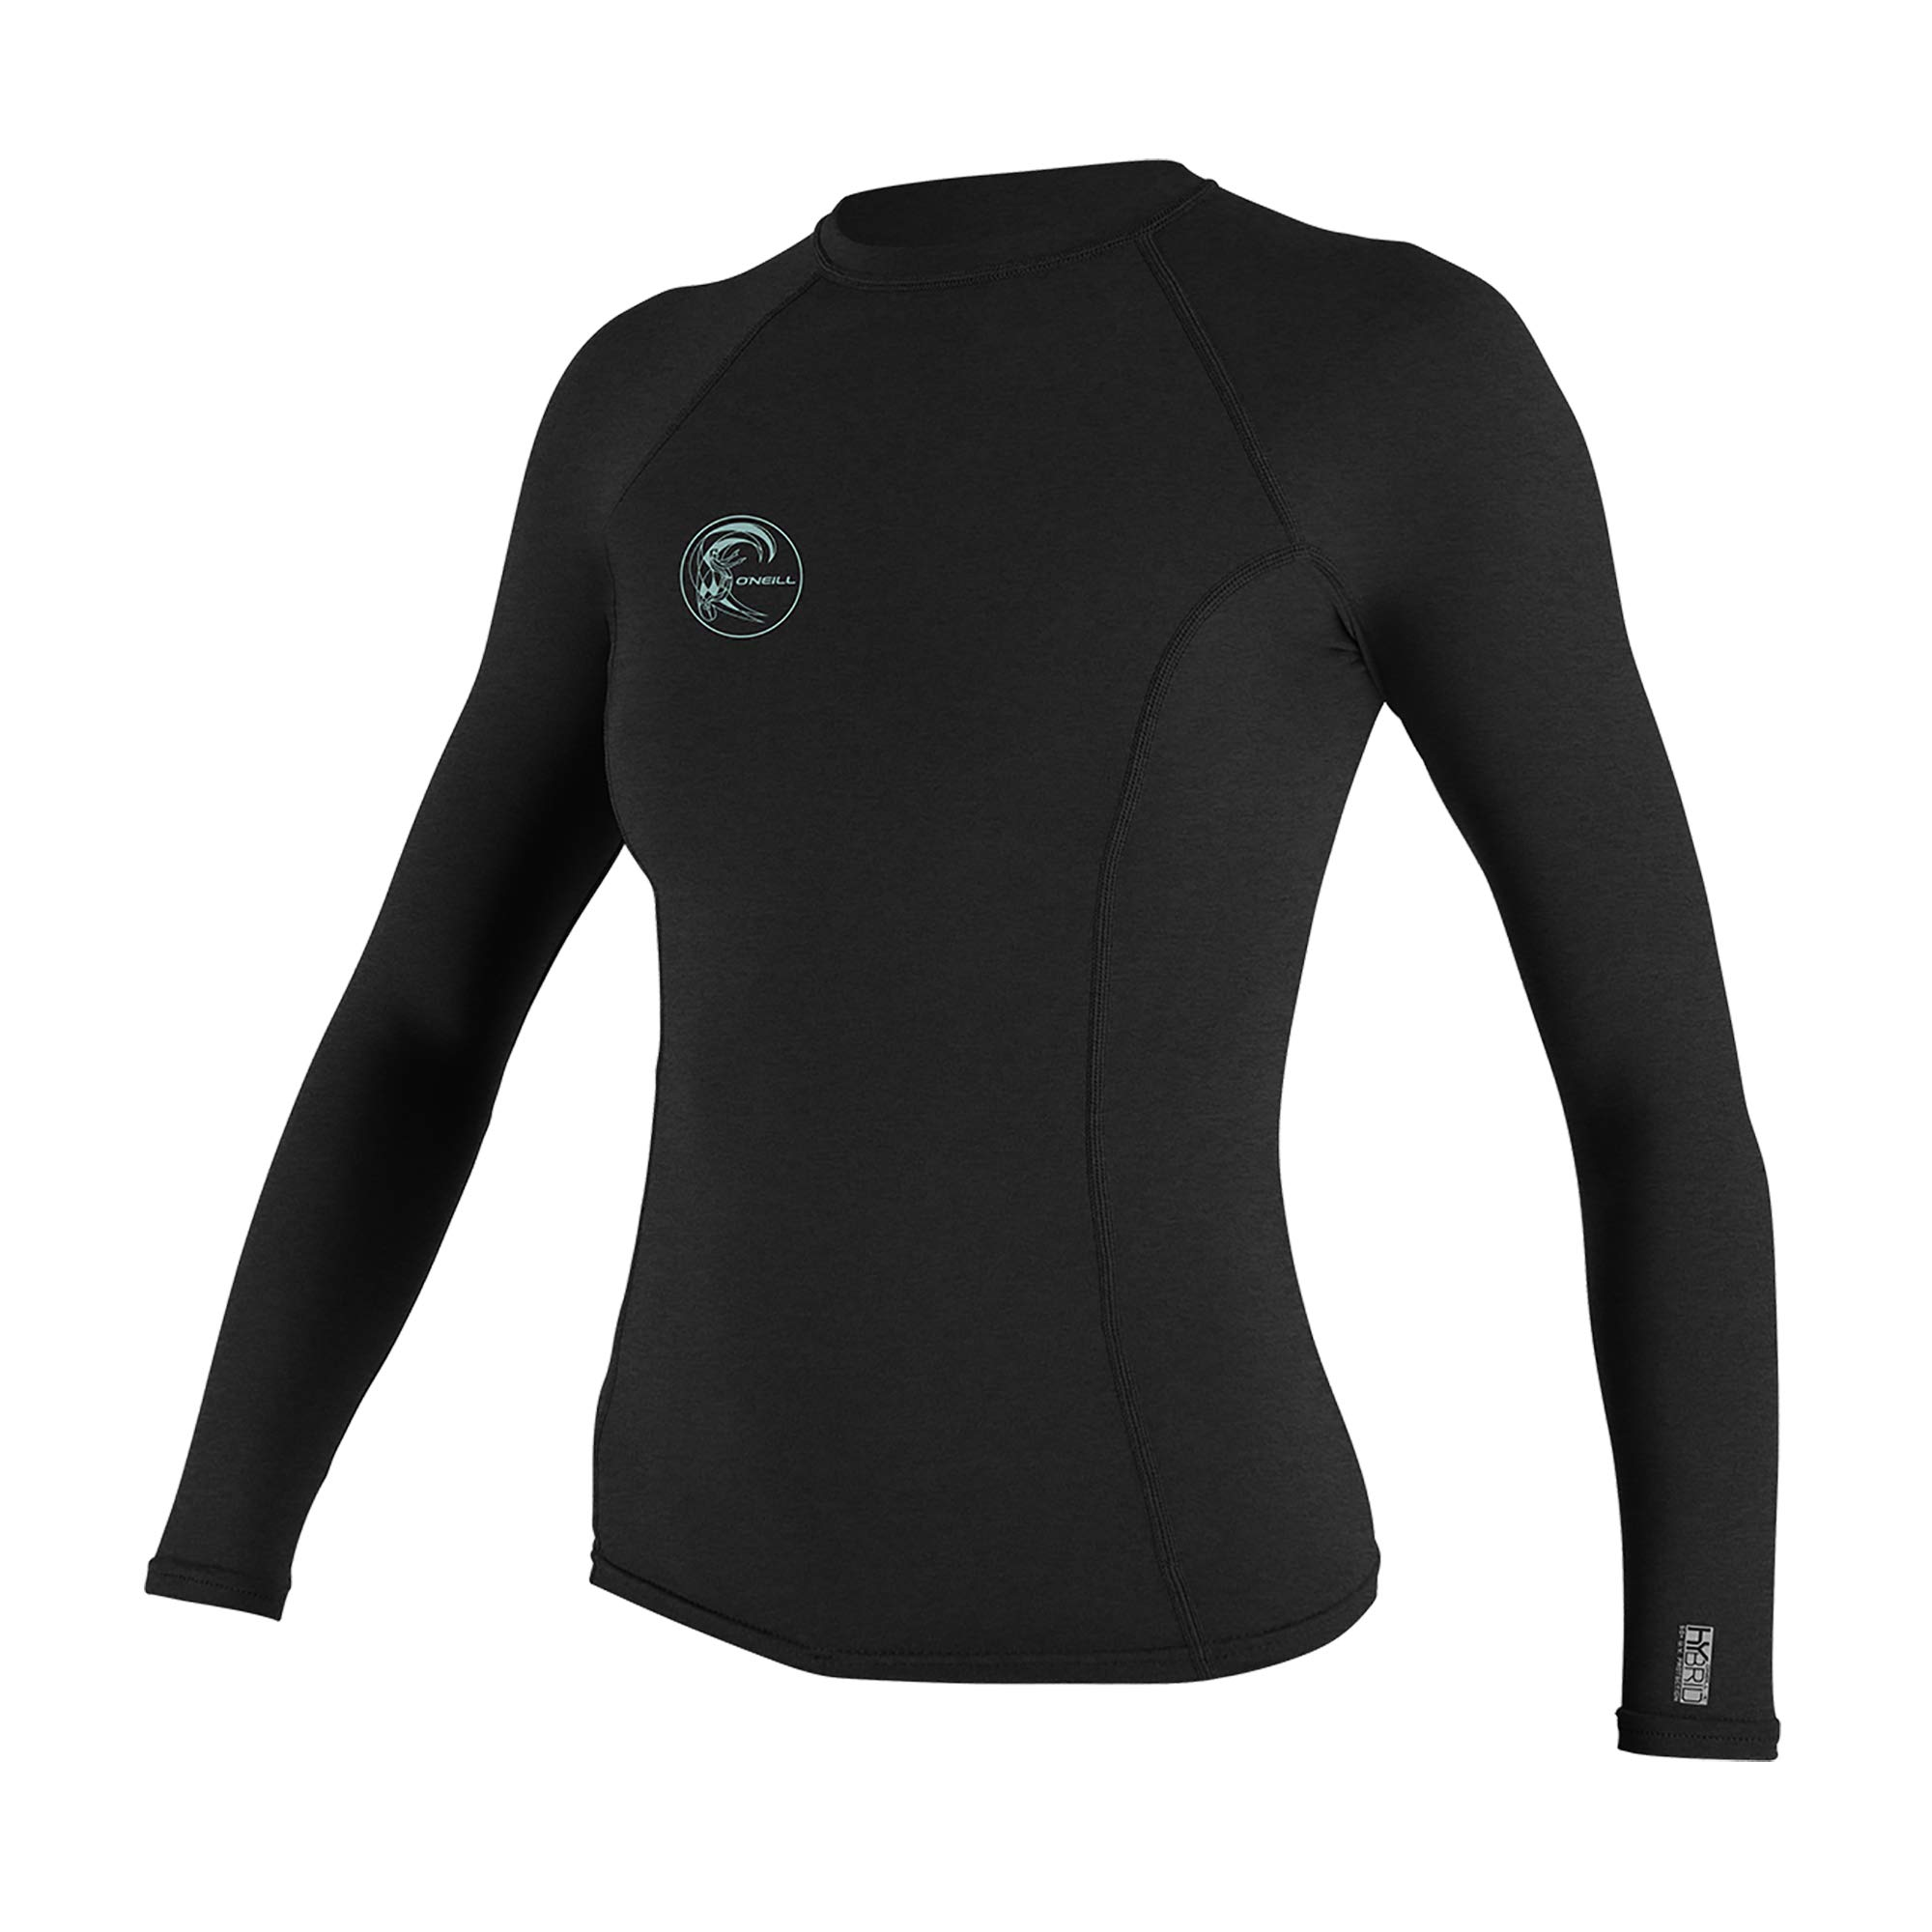 O'Neill Wetsuits Women's Hybrid UPF 50+ Long Sleeve Rash Guard, Black, Medium by O'Neill Wetsuits